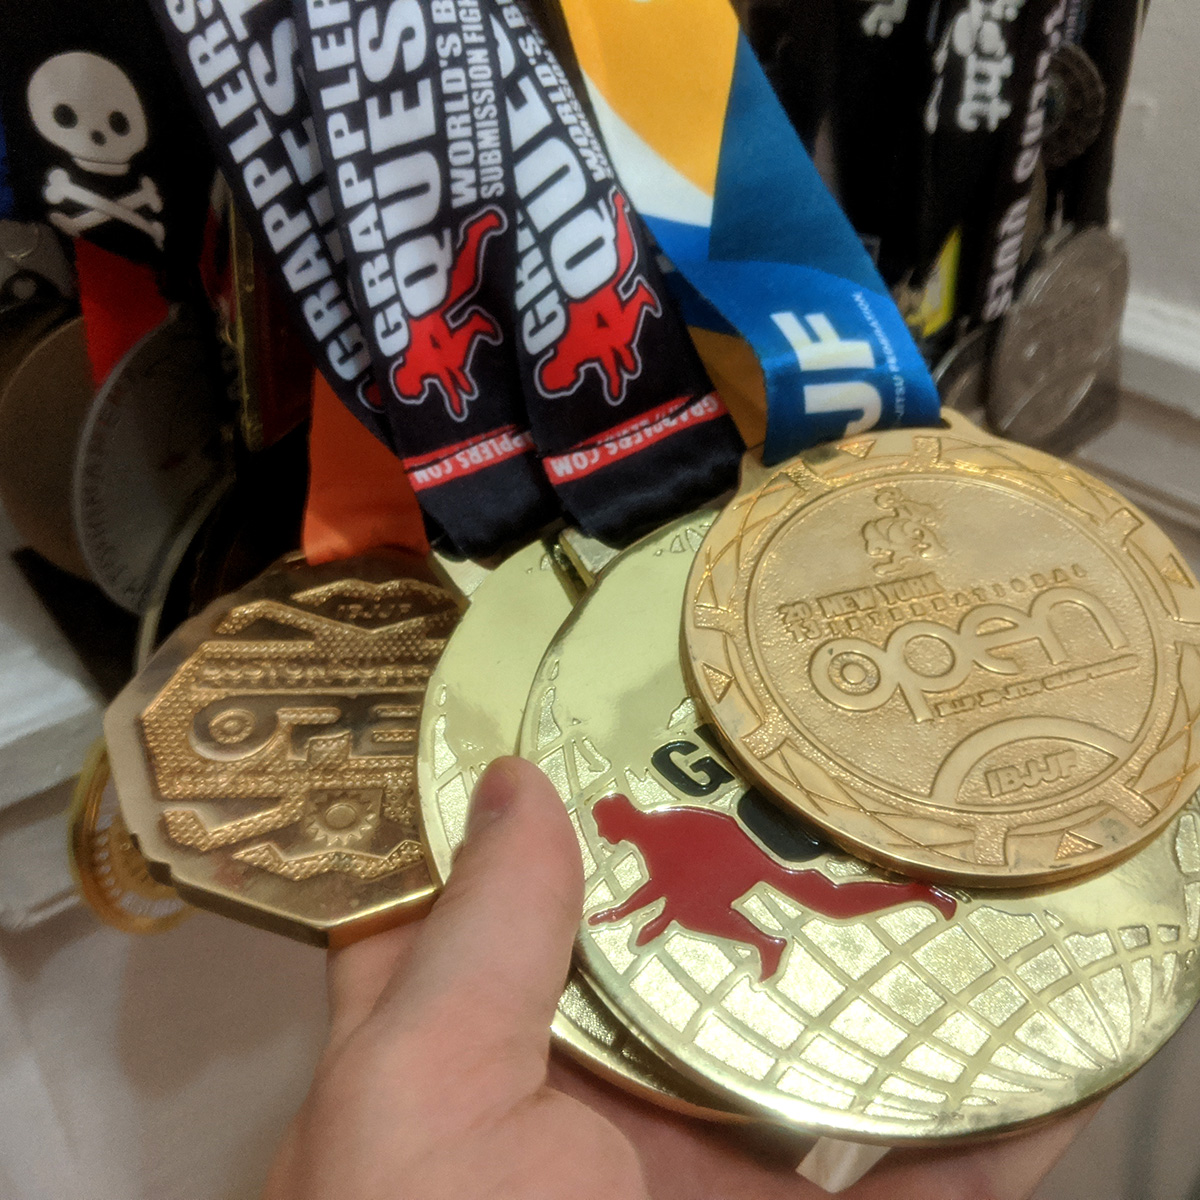 I competed in combat sports my whole life: wrestling, judo, jiu jitsu. Competition taught me that facing fear in all its forms is good for growth. Im getting rid of these medals along with most of my stuff this week. Ill just have to win some new ones in 2020, both judo & bjj.